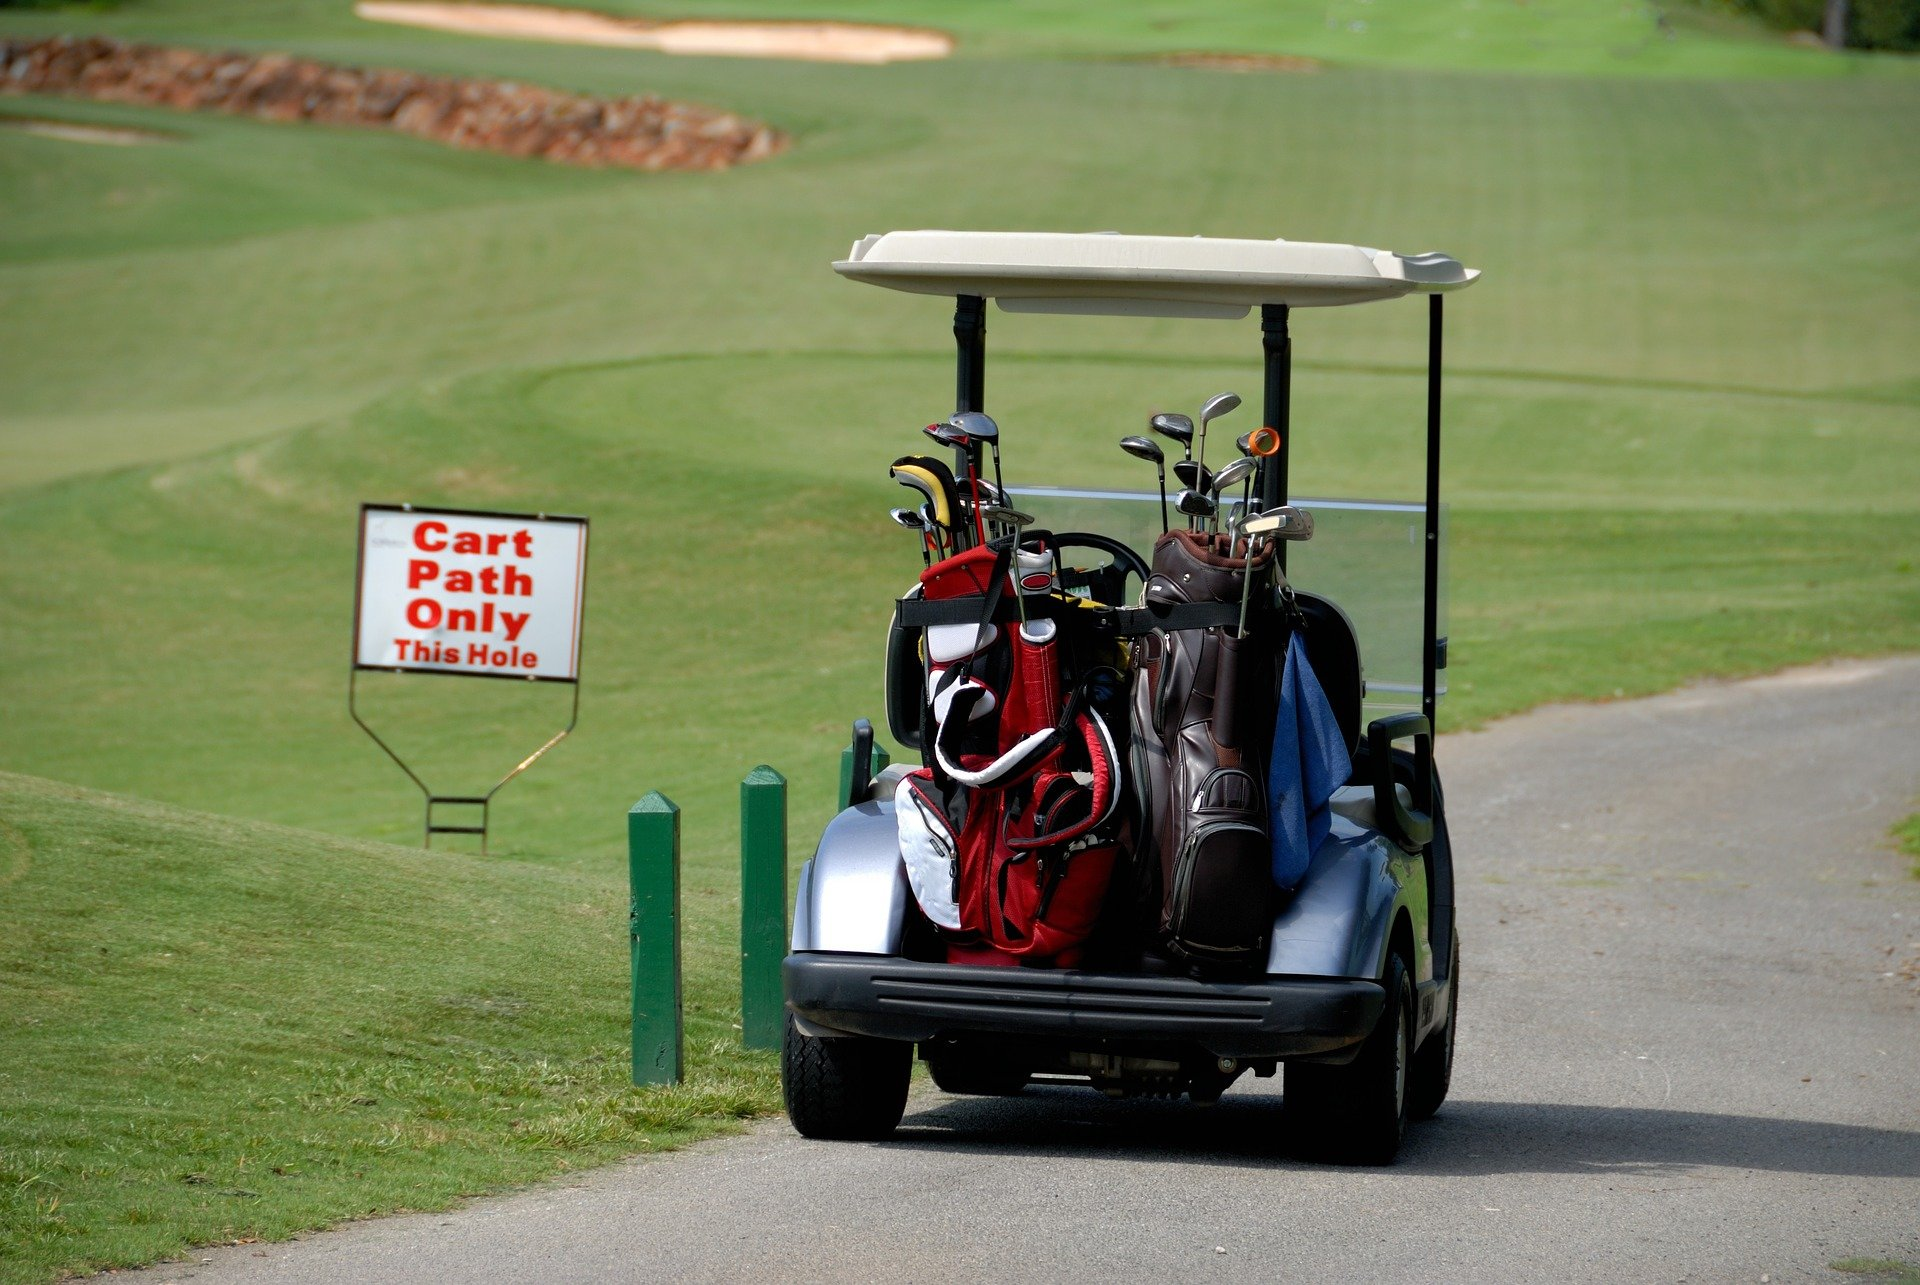 Get off the golf cart if you have knee osteoarthritis for Narrow golf cart